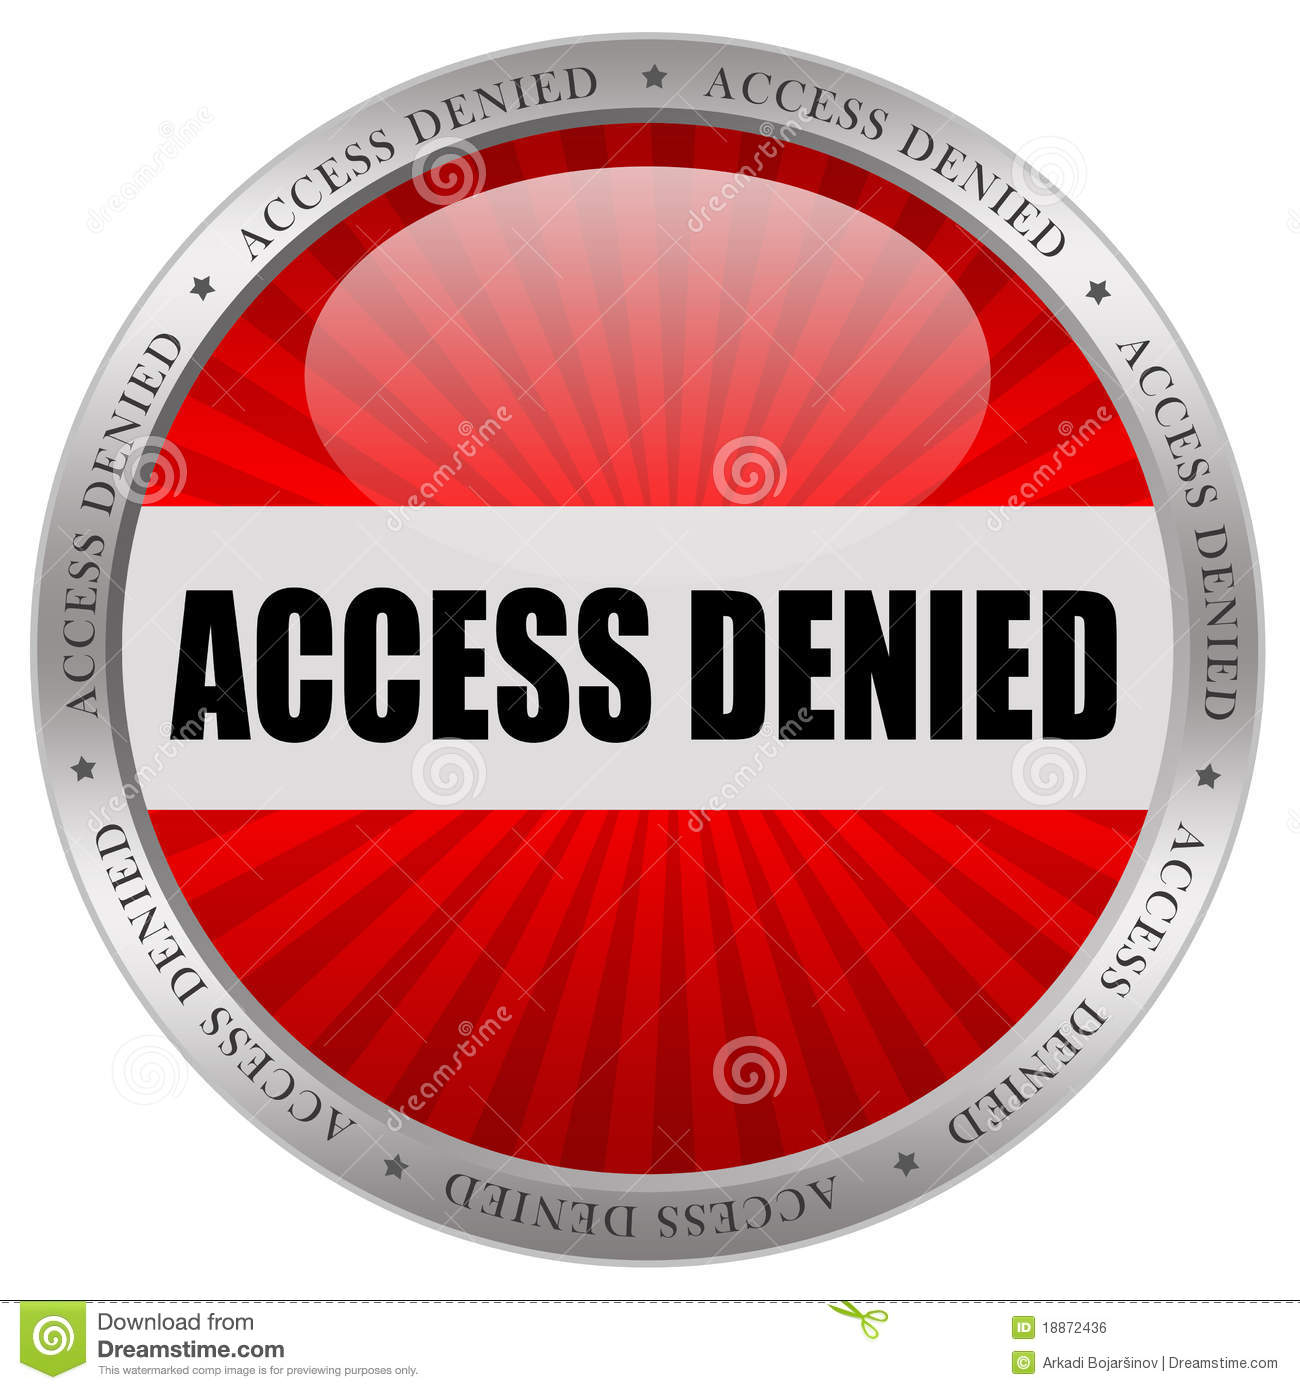 Windows 7 Access Denied For Administrator